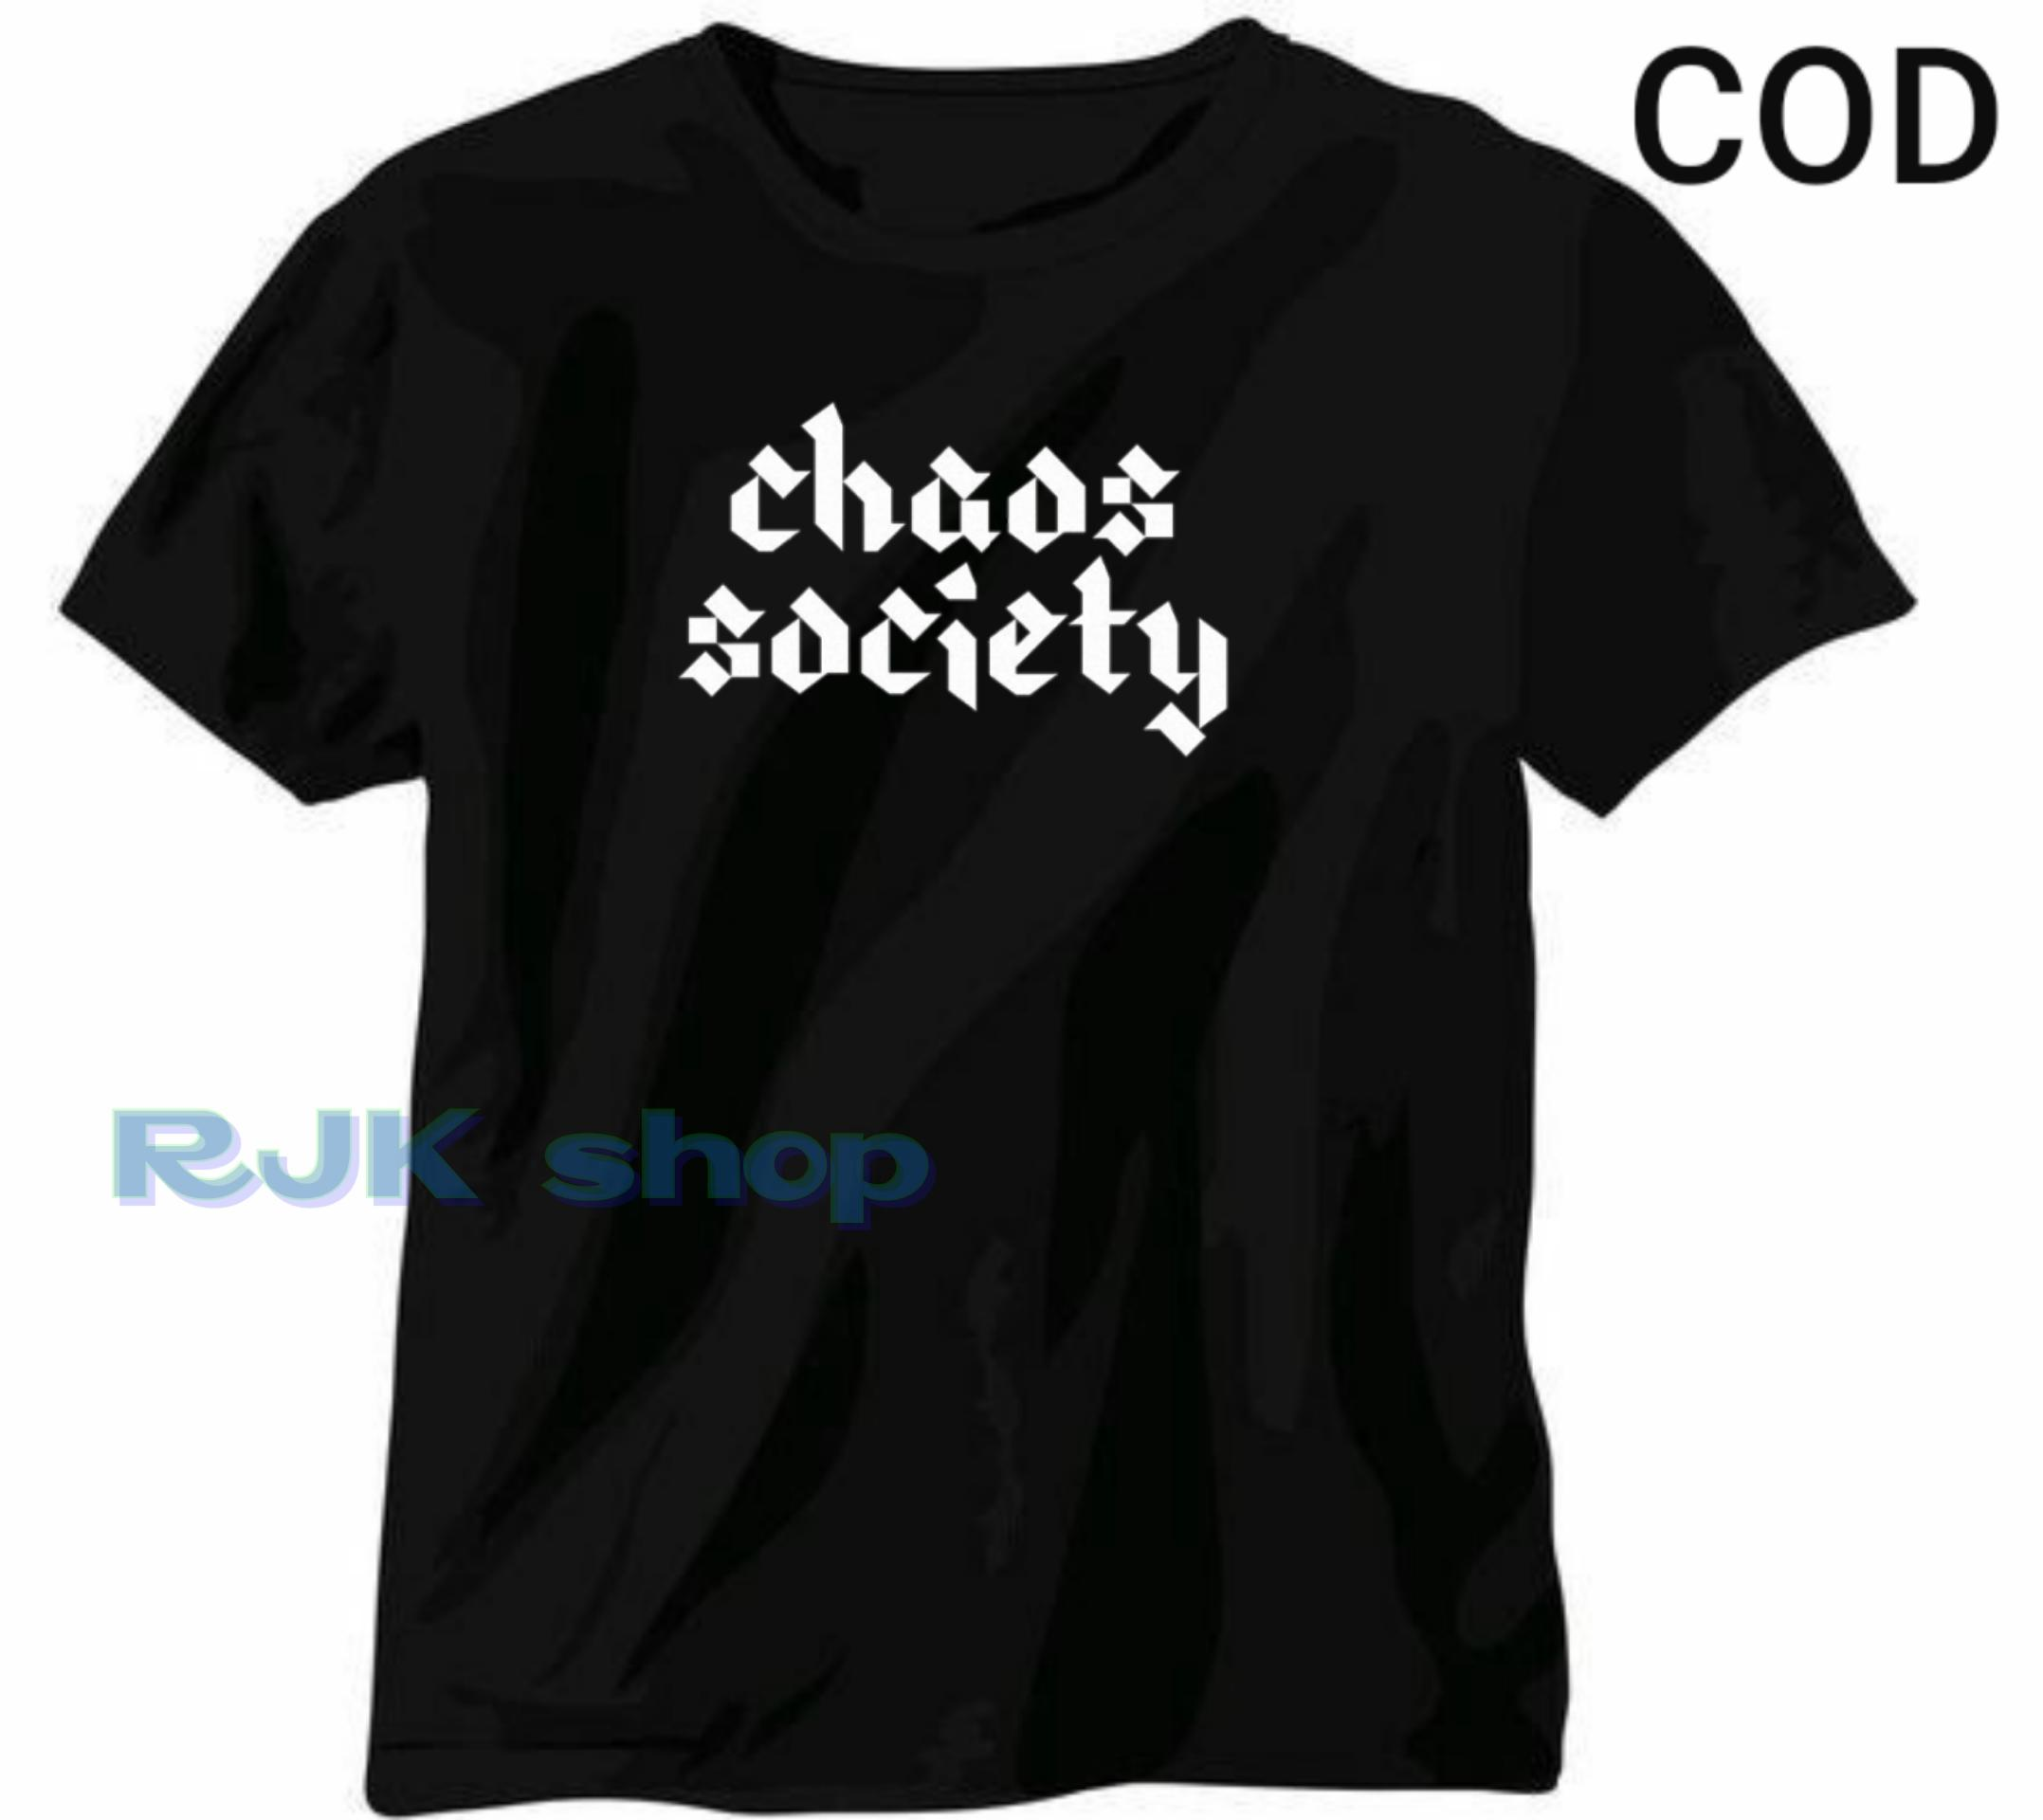 RJK SHOP- Kaos distro * CHAOS SOCIETY * / Cotton Combed 30s Size S M L XL XXL Baju Kaos Distro Jumb